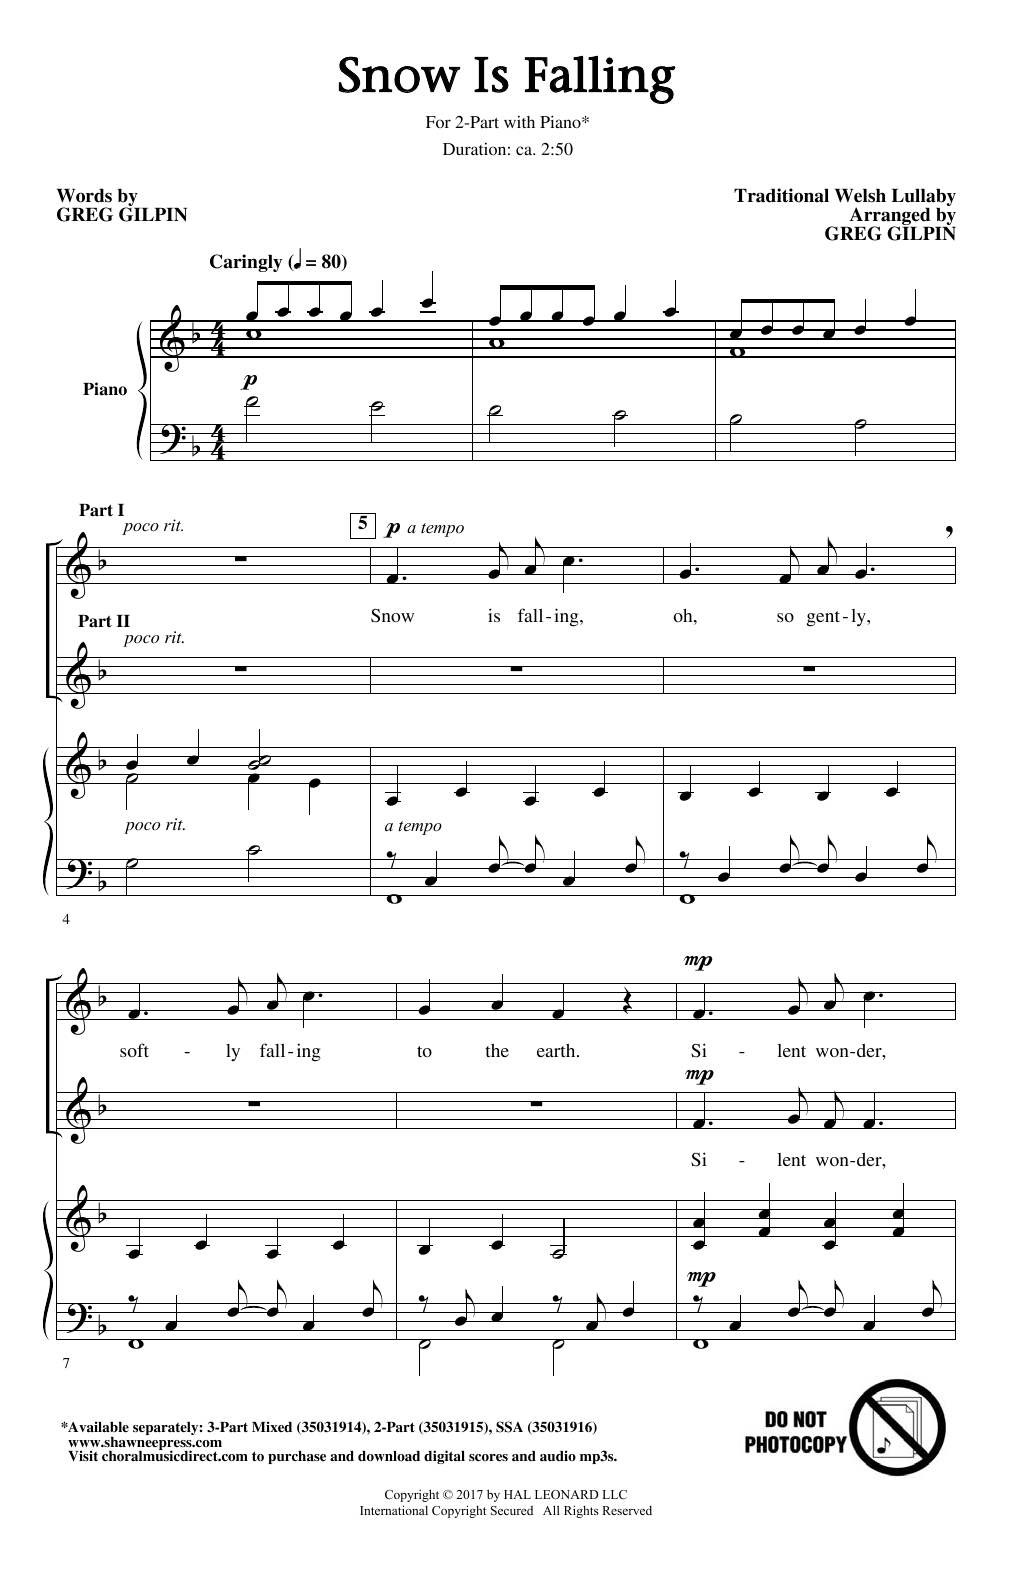 Greg Gilpin Snow Is Falling Sheet Music Notes Chords Printable